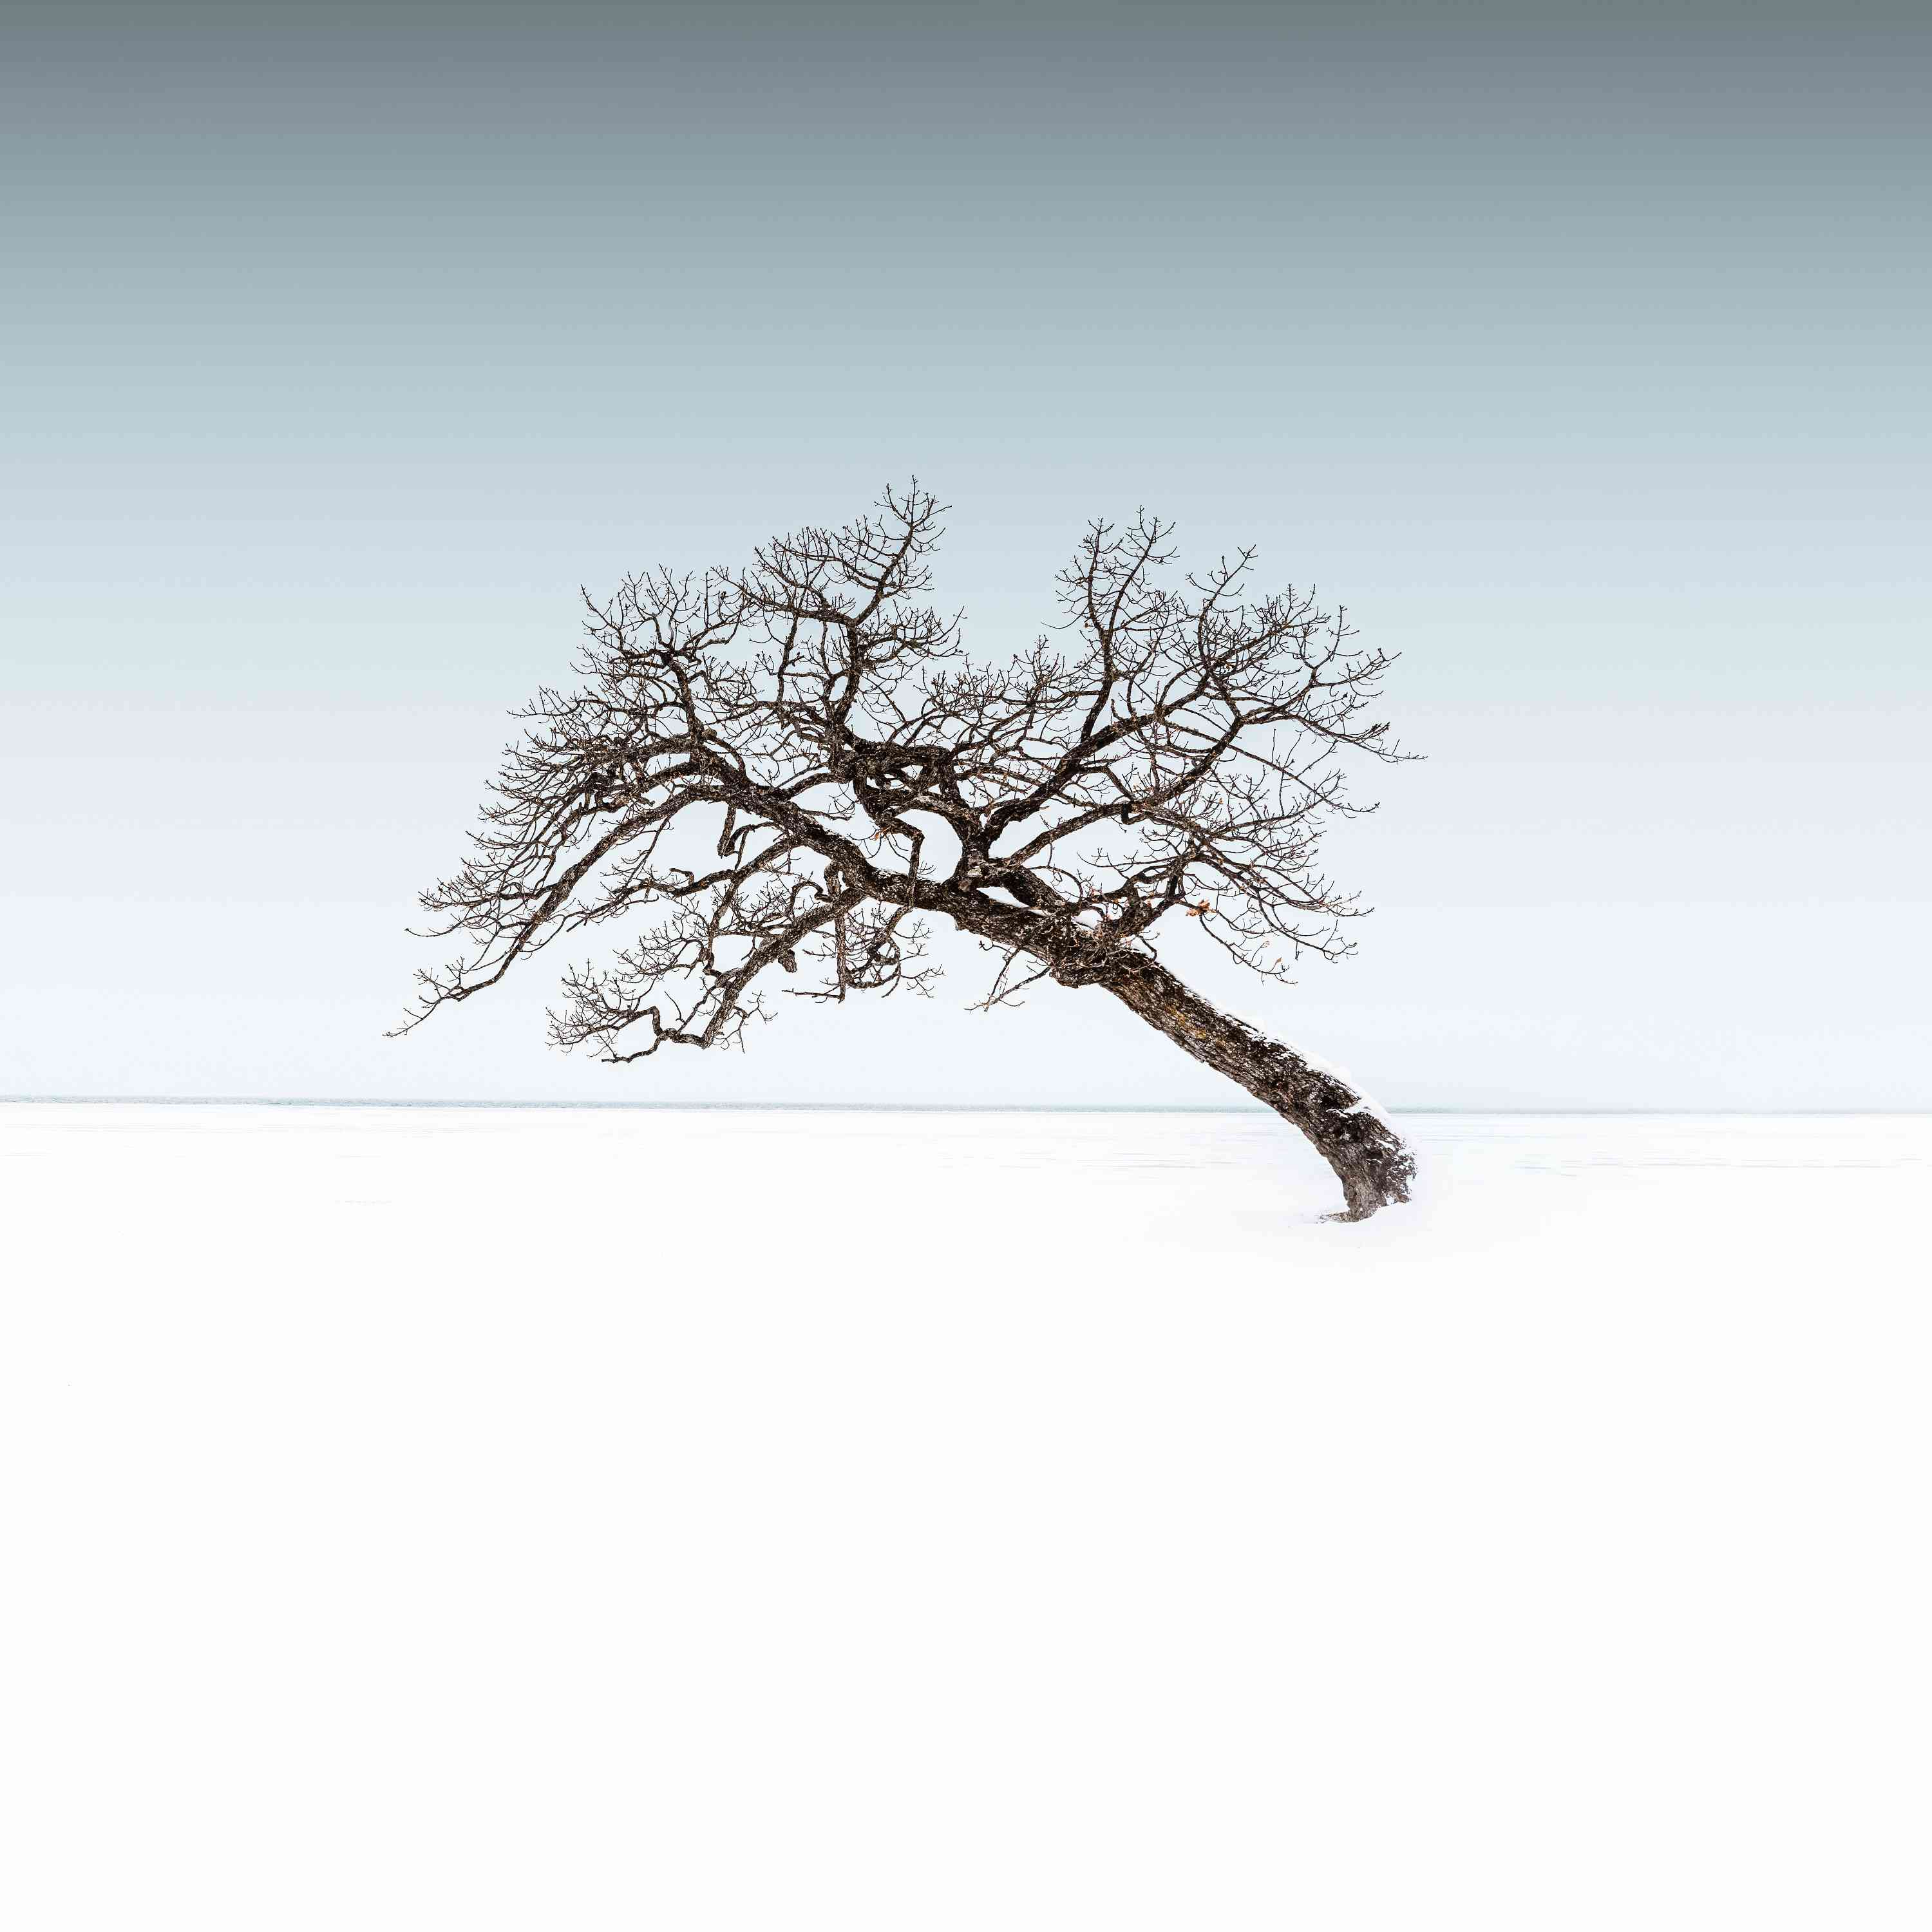 tree leaning in the snow